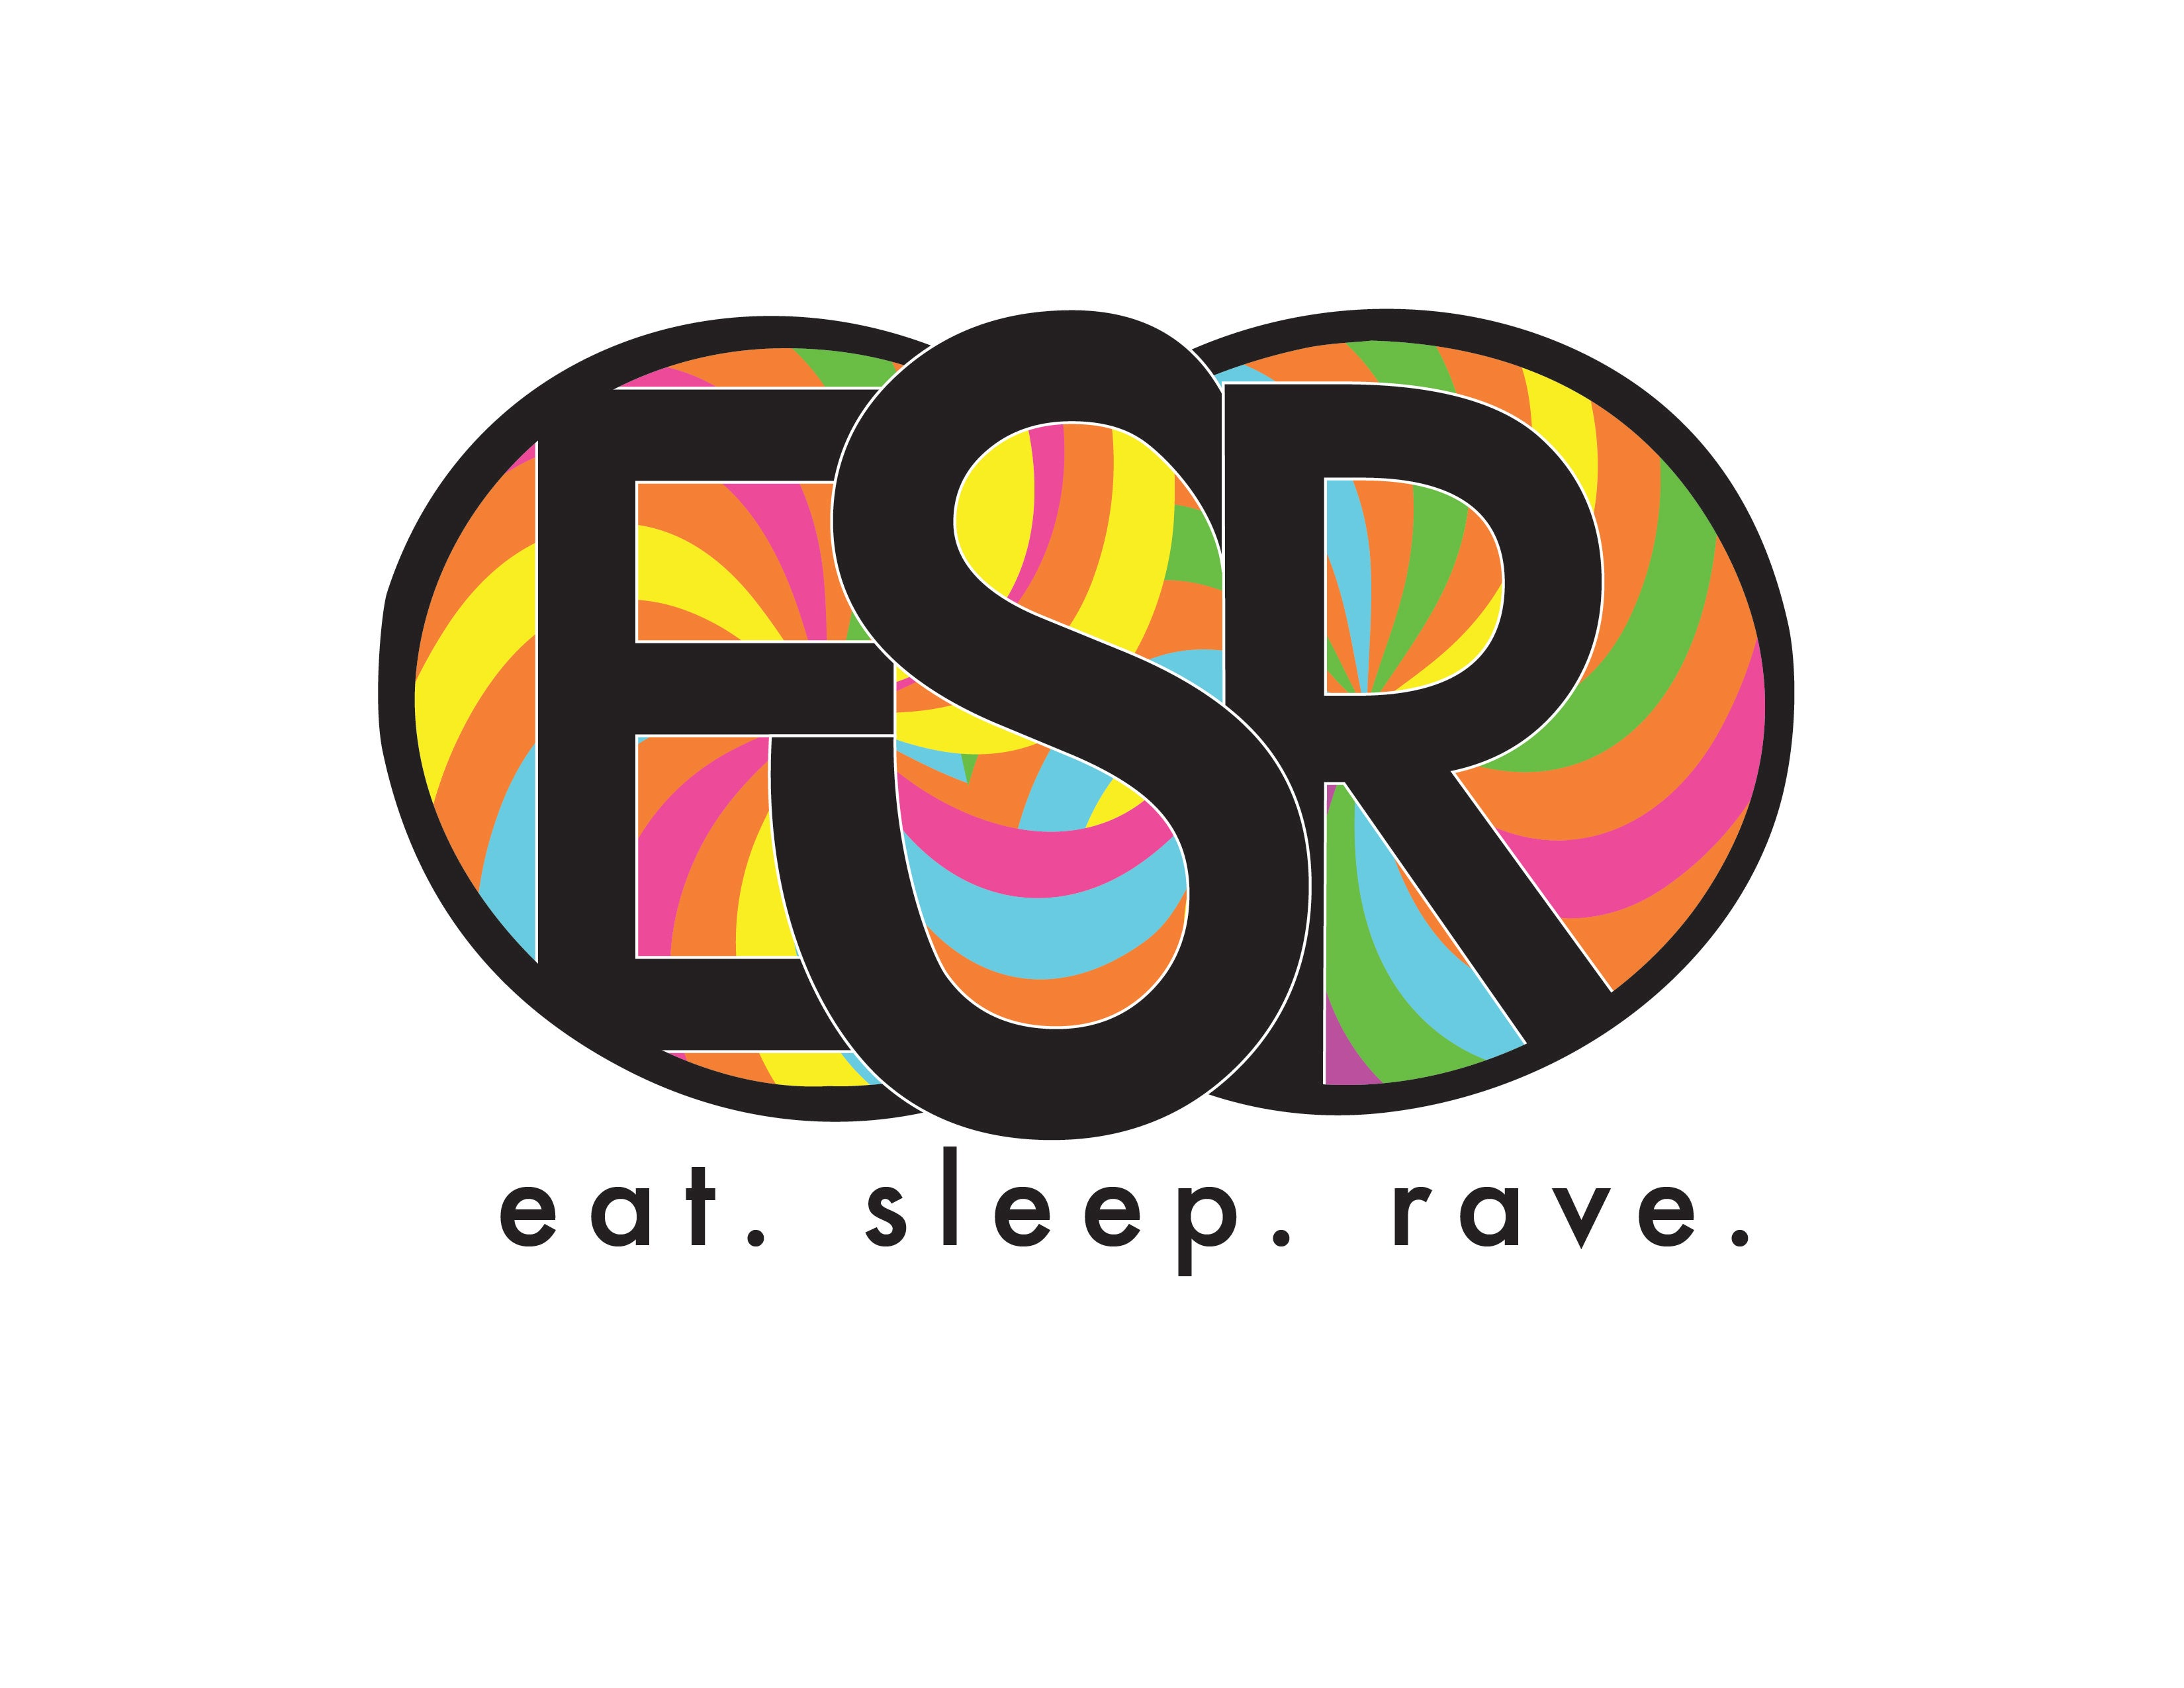 Eat Sleep Rave